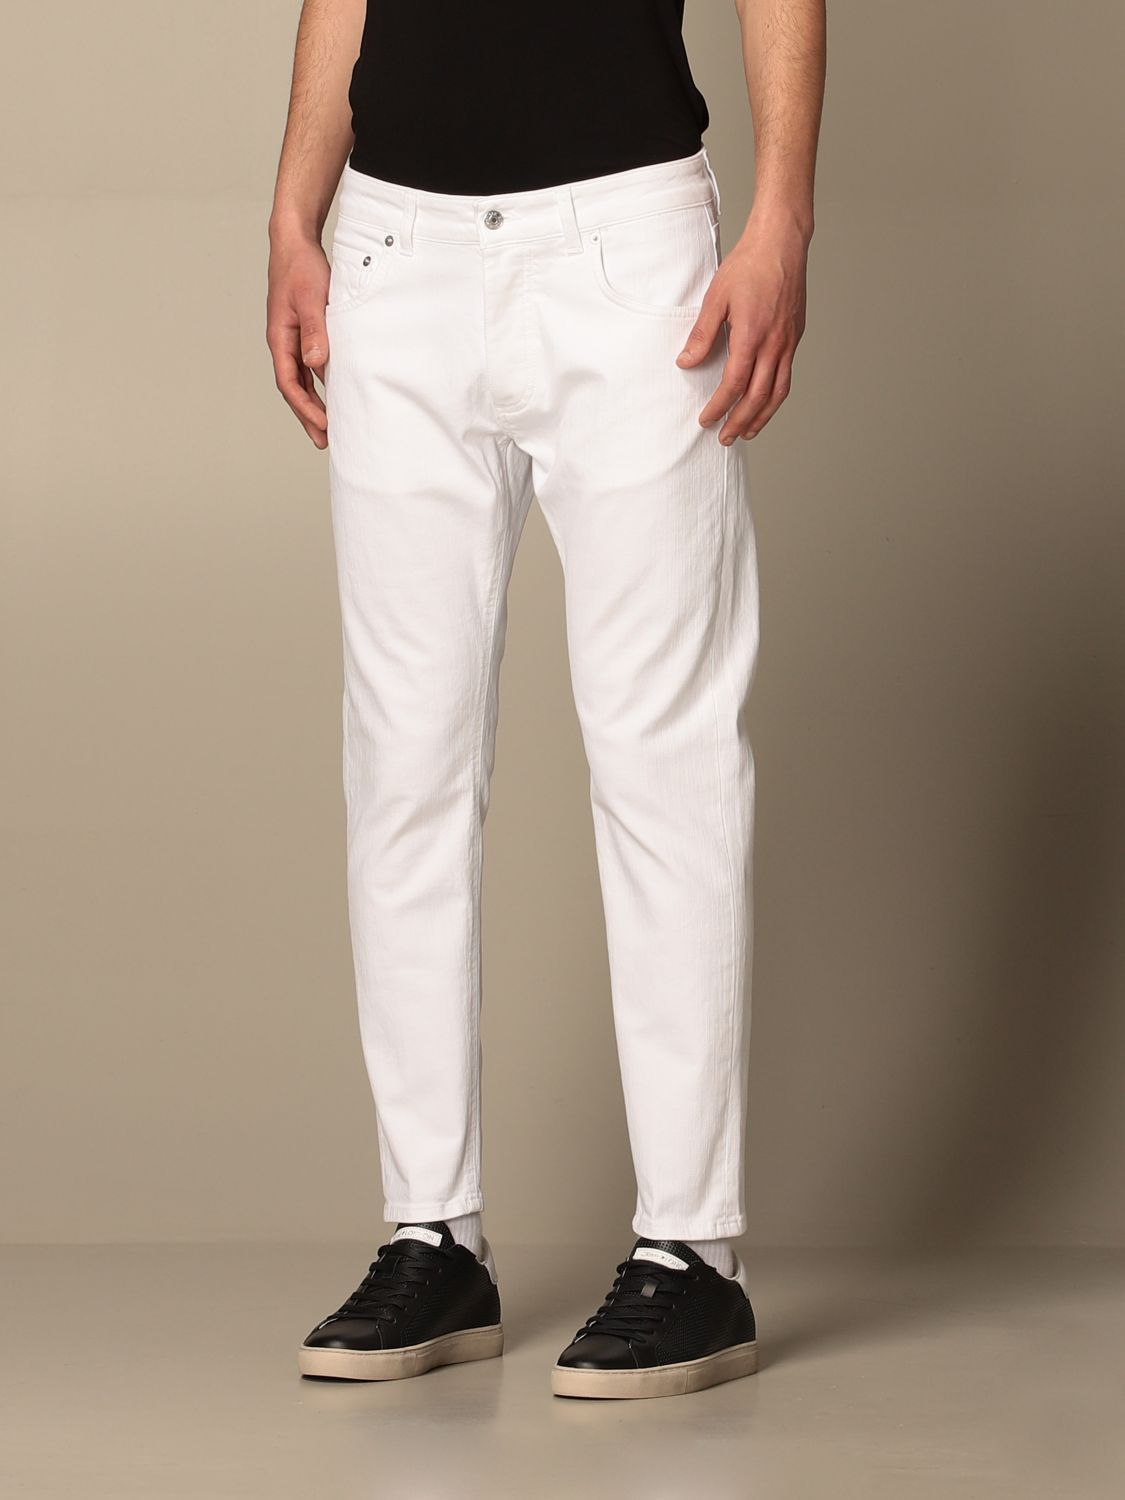 Pantalone Be Able: Pantalone a 5 tasche Be Able in cotone stretch bianco 3